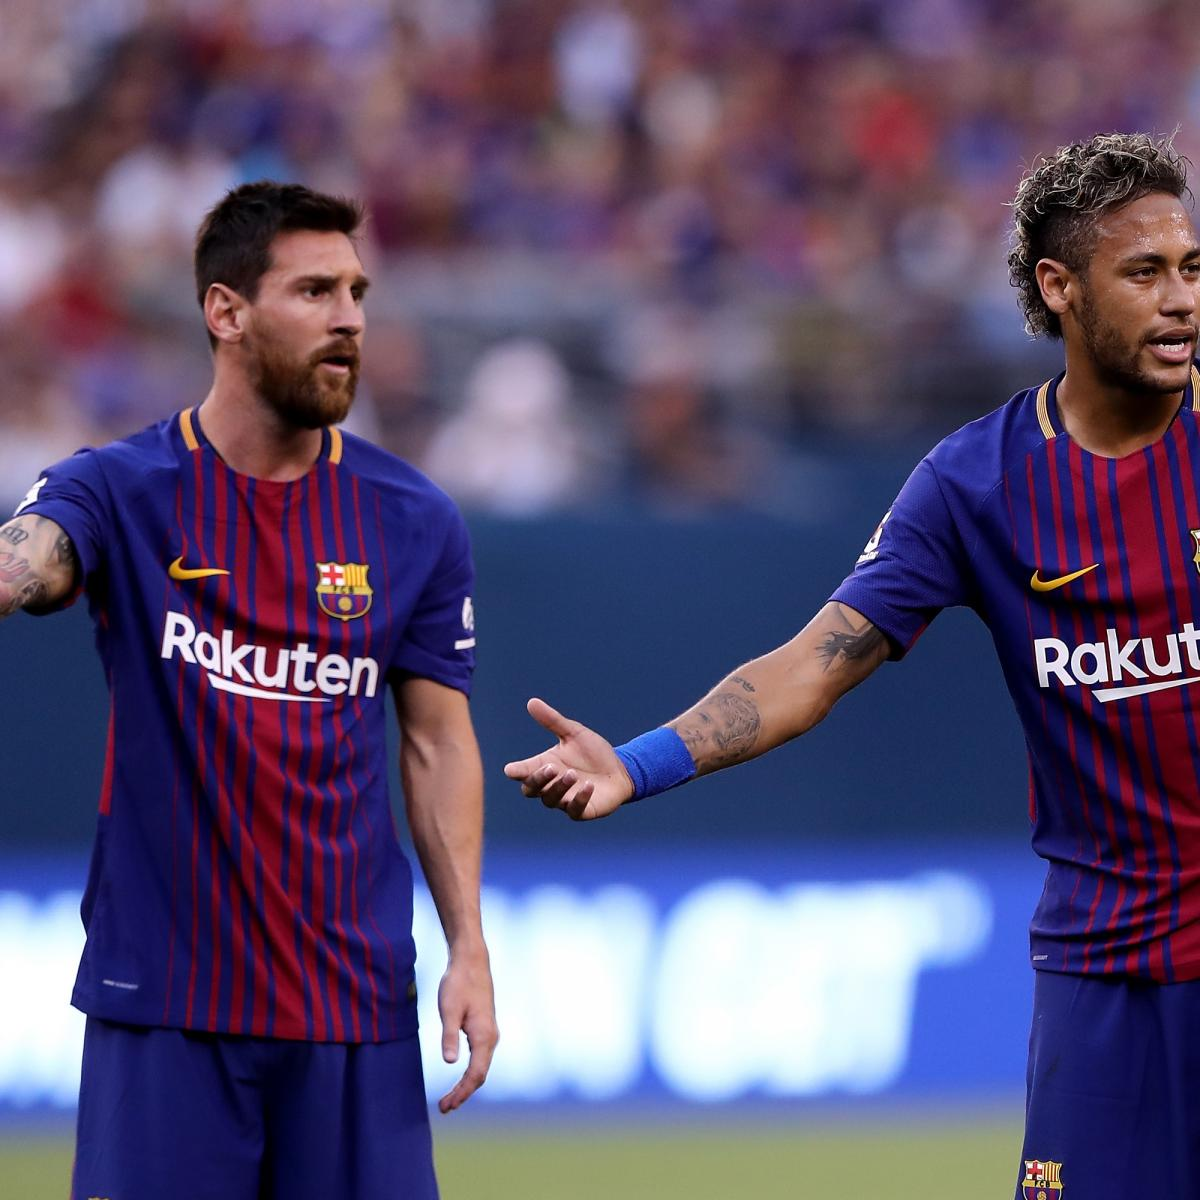 Brazilian Star Moves From Psg: Lionel Messi Posts Emotional Neymar Video Ahead Of